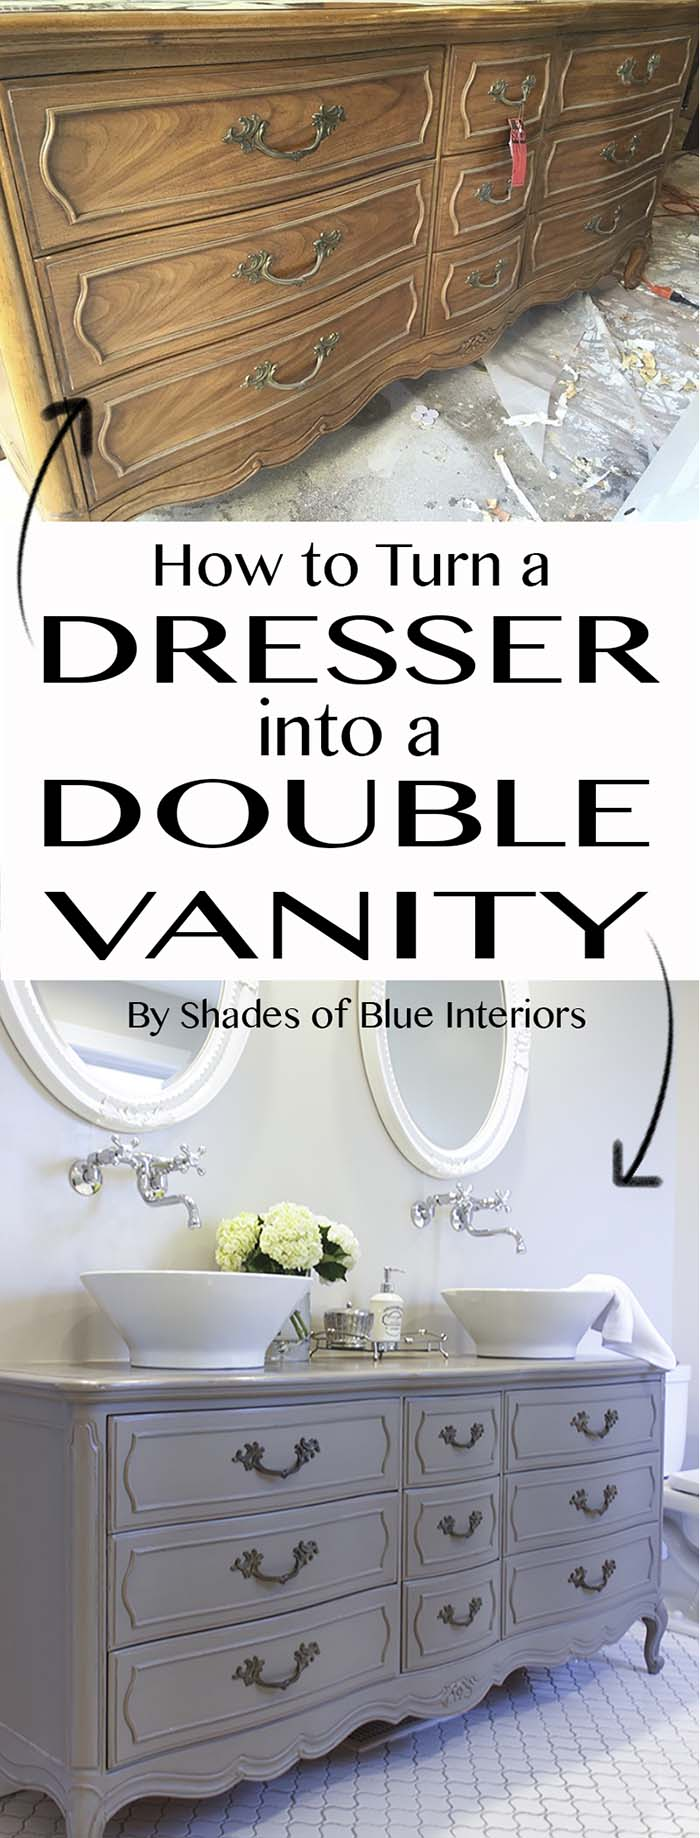 Turn Dresser To Double Vanity #furniture #makeover #diy #decorhomeideas